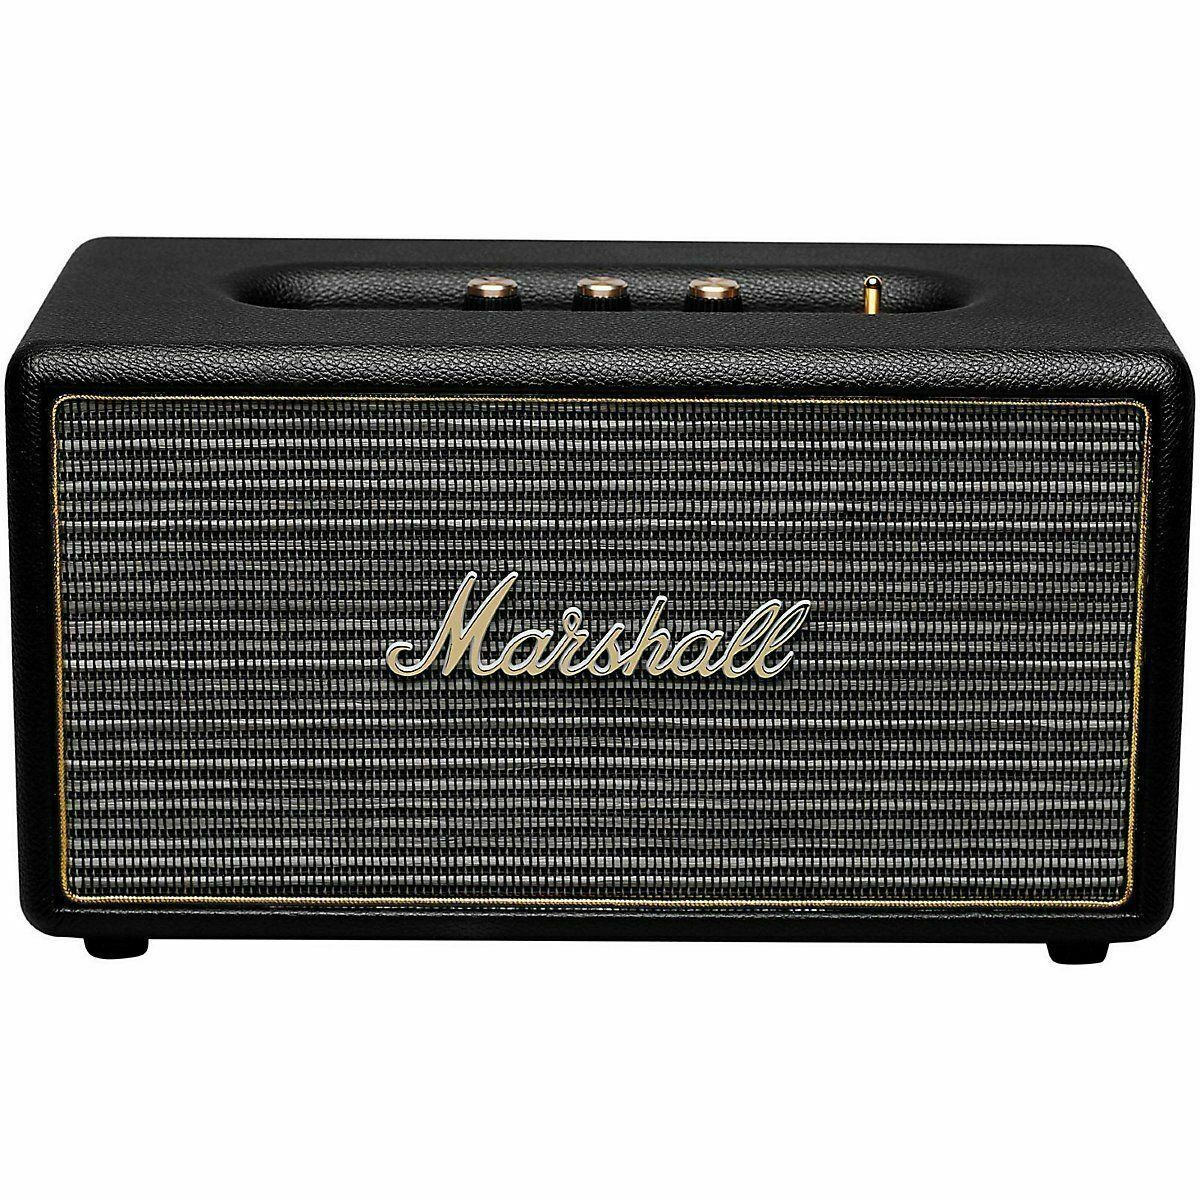 Marshall Stanmore Wireless Bluetooth Stereo Speaker System -